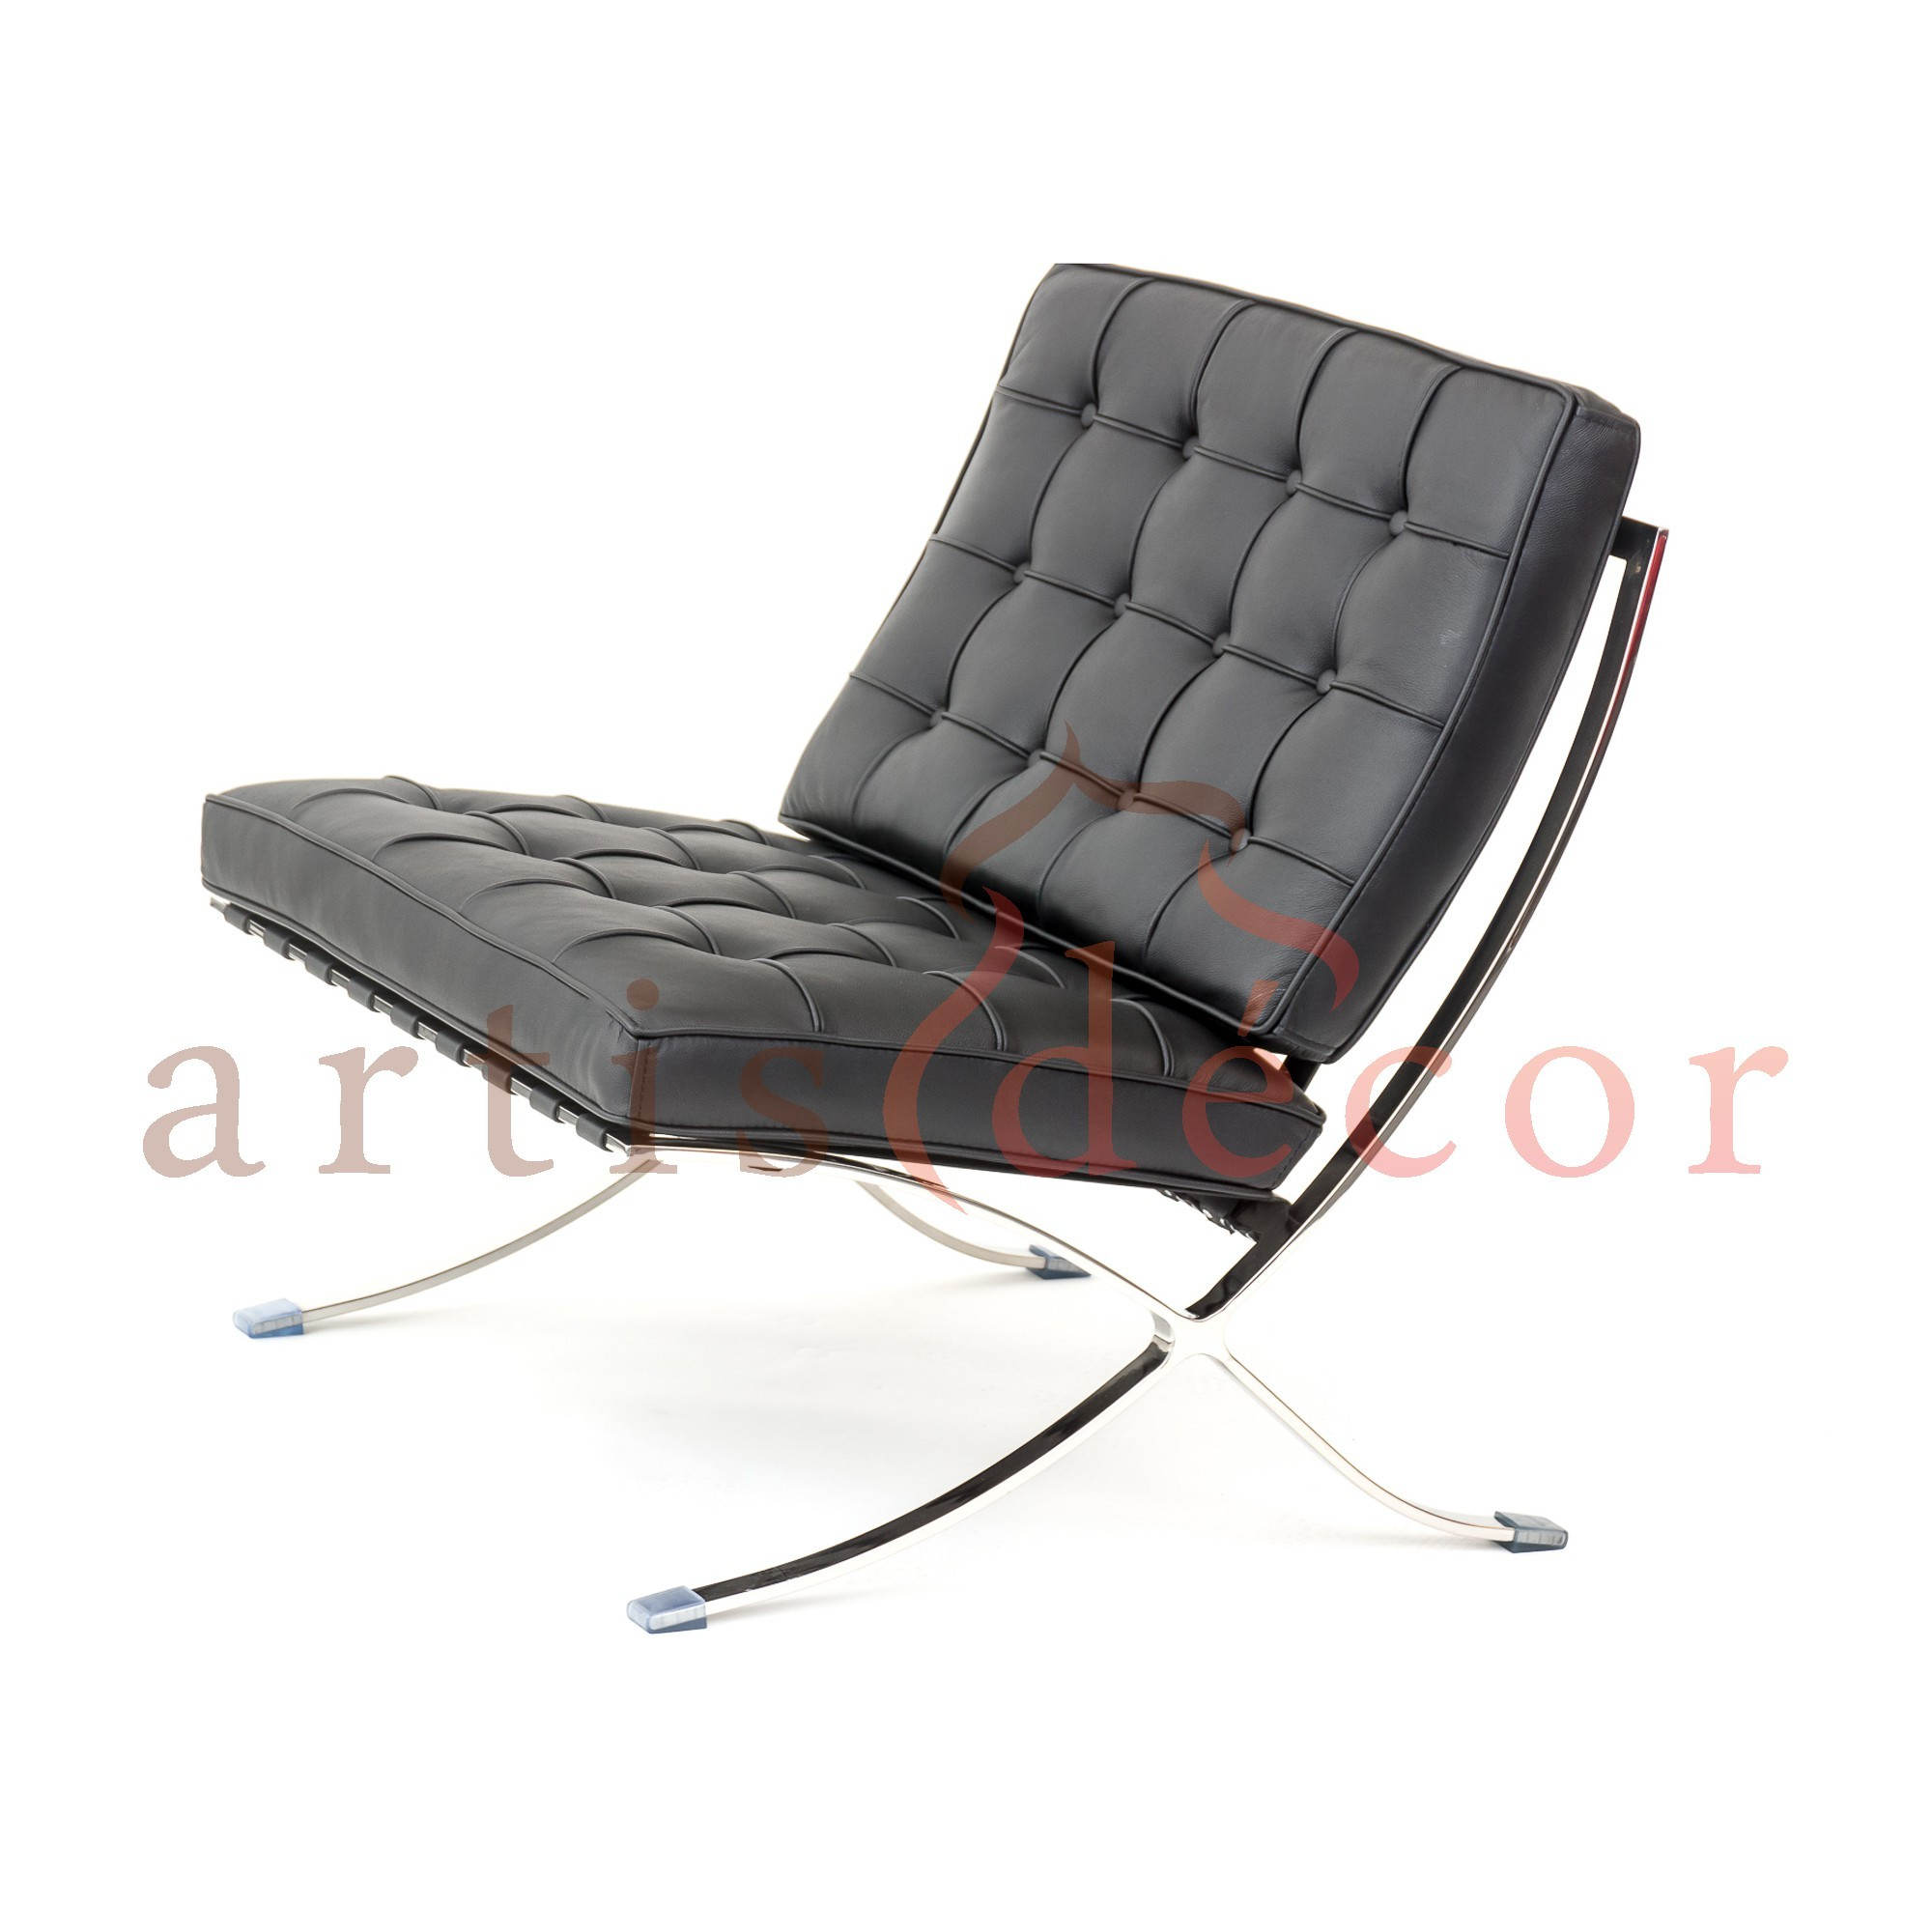 Barcelona Style Premium Lounge Chair and Ottoman White  : b11 from www.artisdecor.com size 2000 x 2000 jpeg 275kB